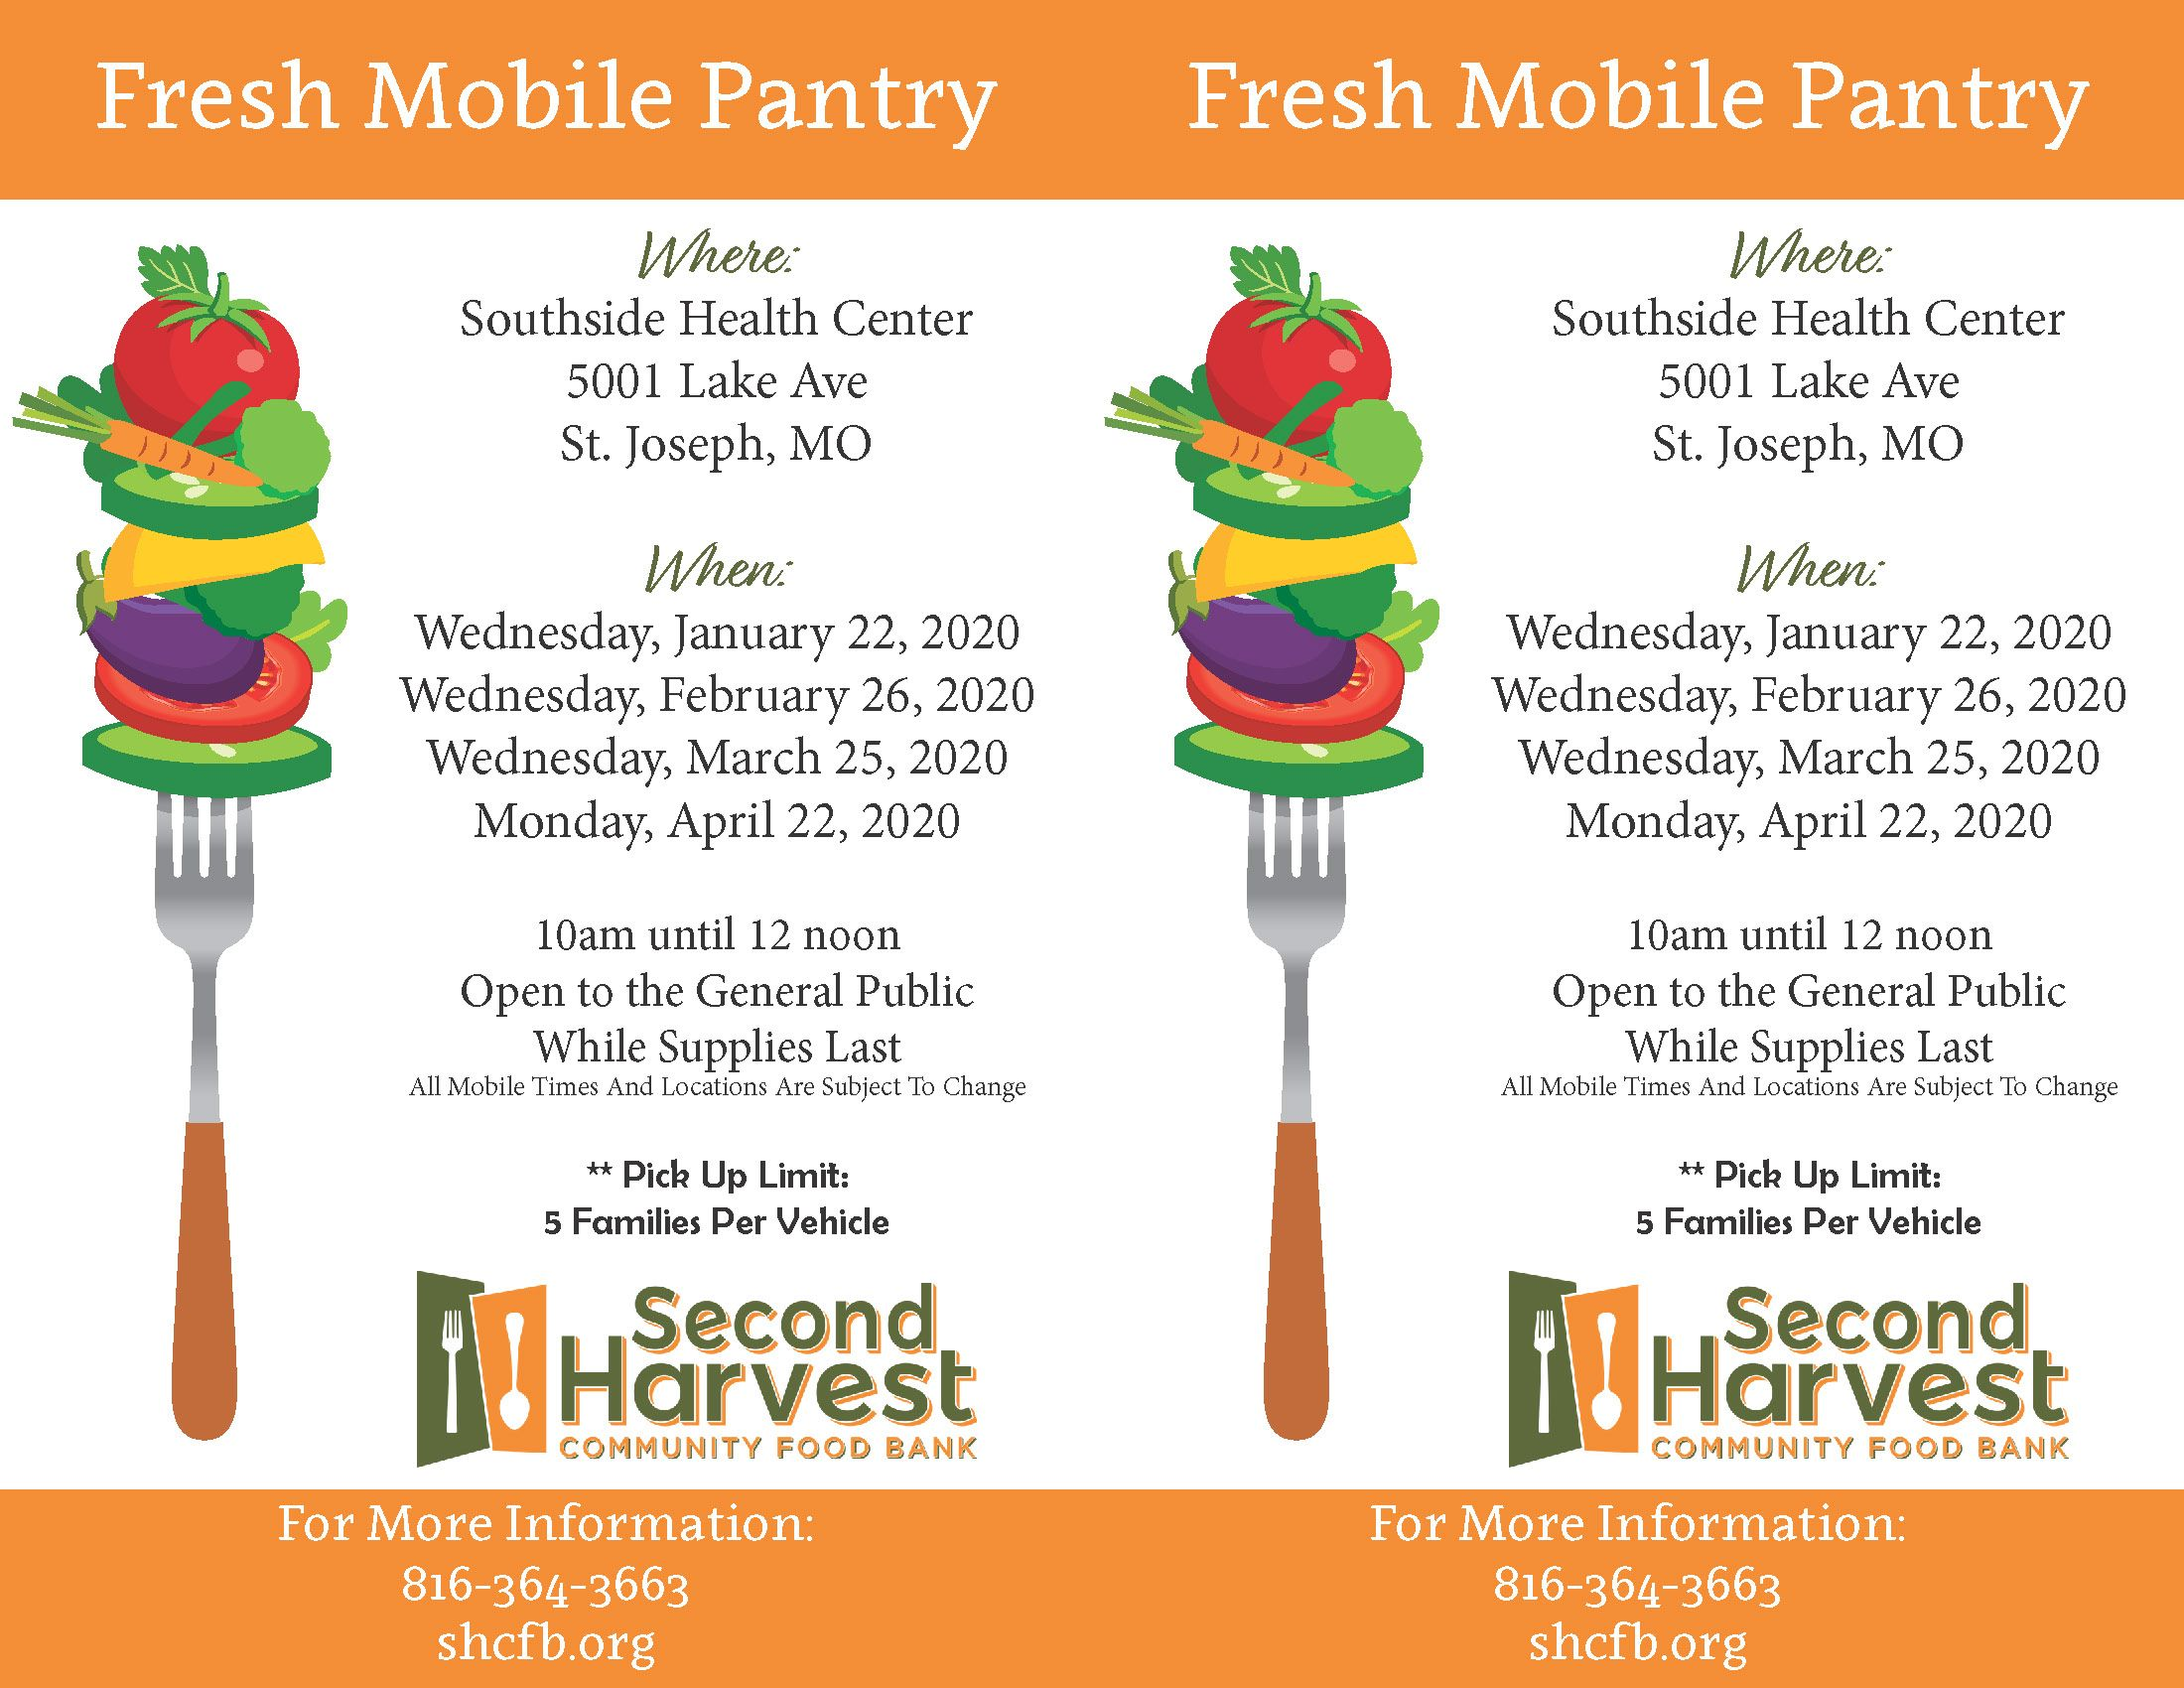 Southside St. Joseph Fresh Mobile Pantry